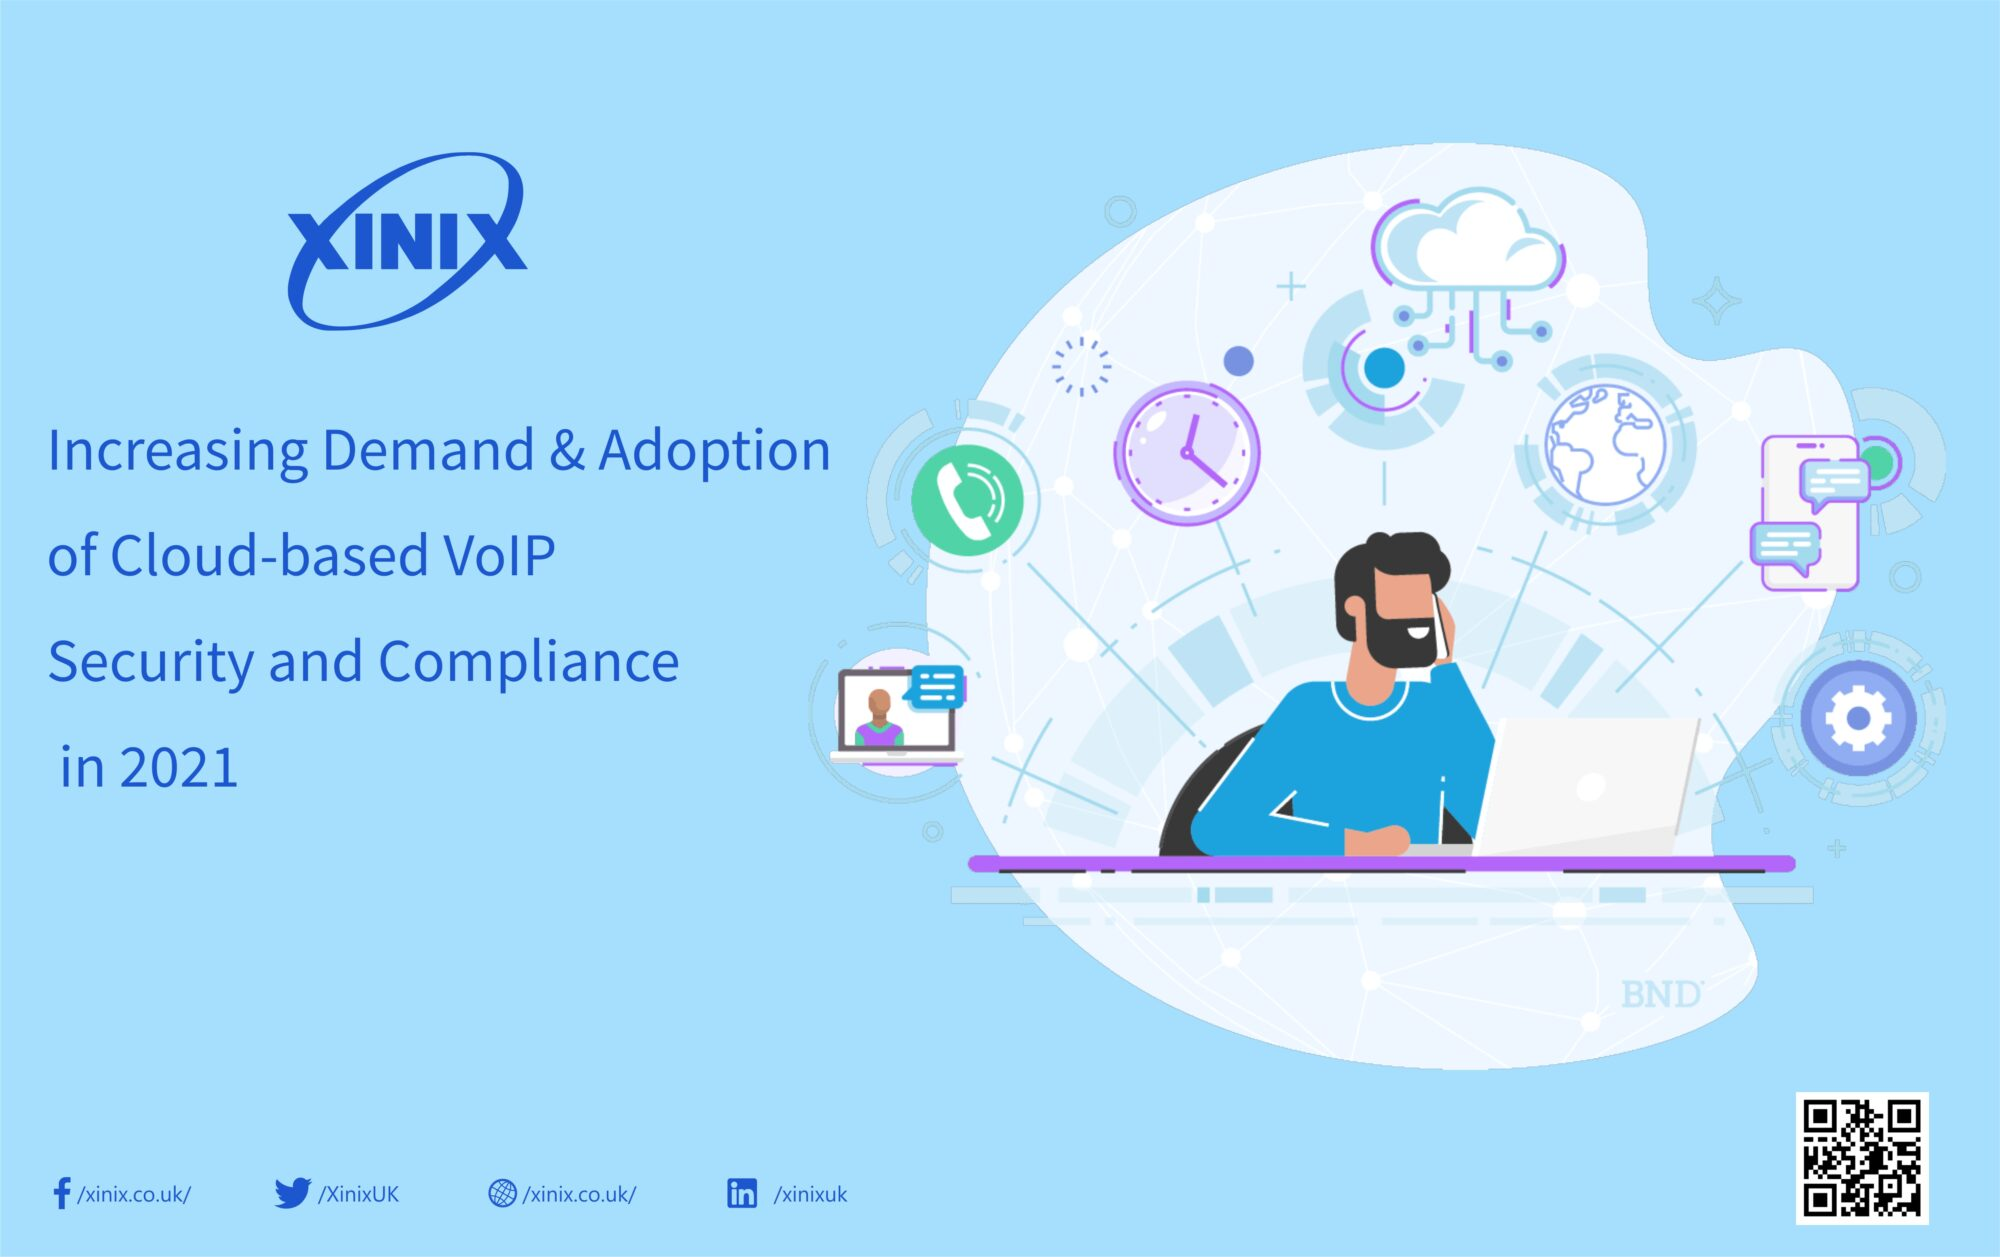 Increasing Demand & Adoption of Cloud-based VoIP Security and Compliance in 2021